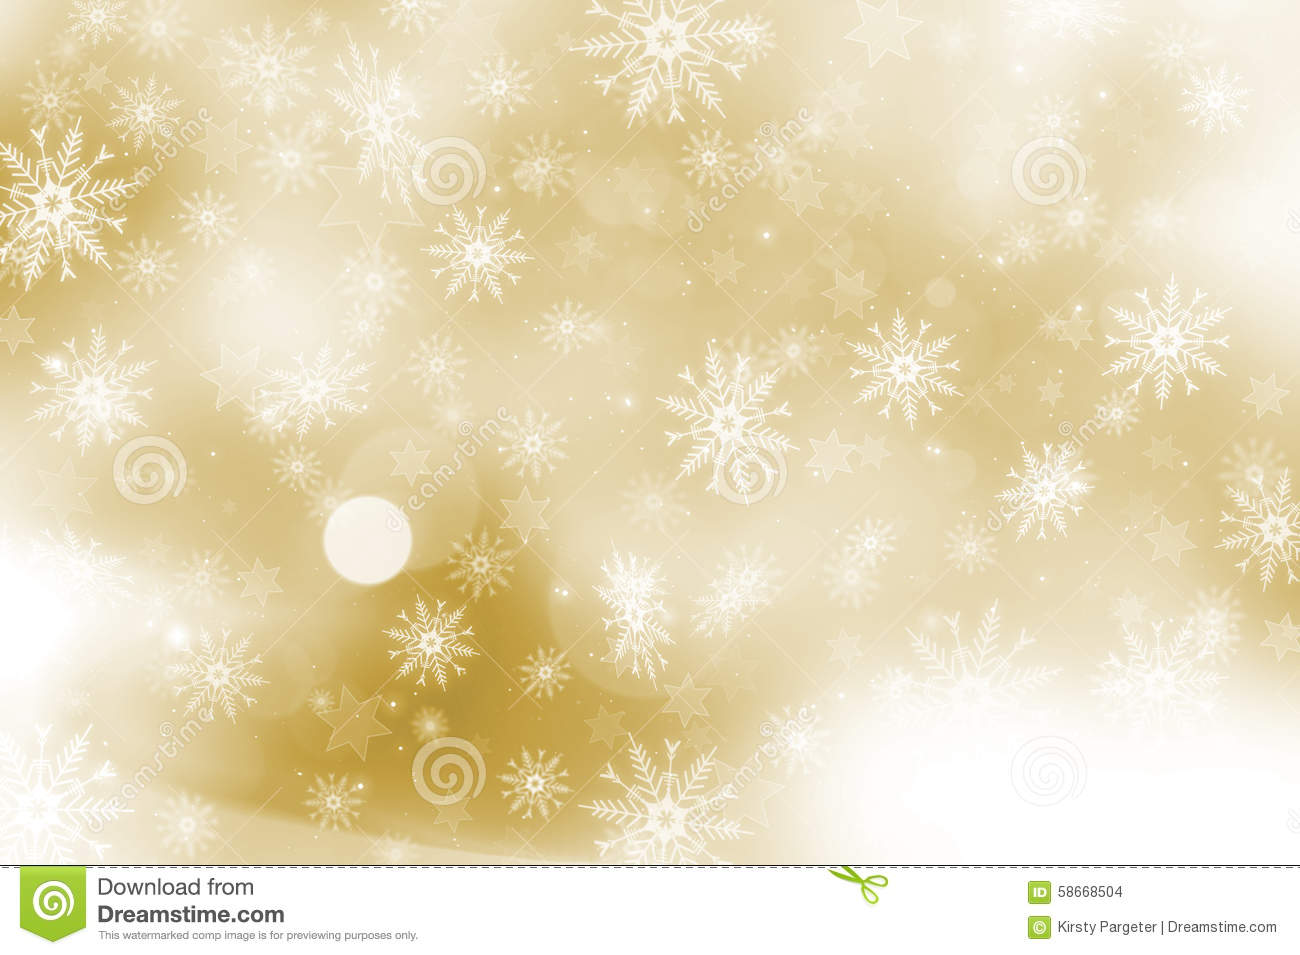 gold christmas snowflake wallpaper - photo #15